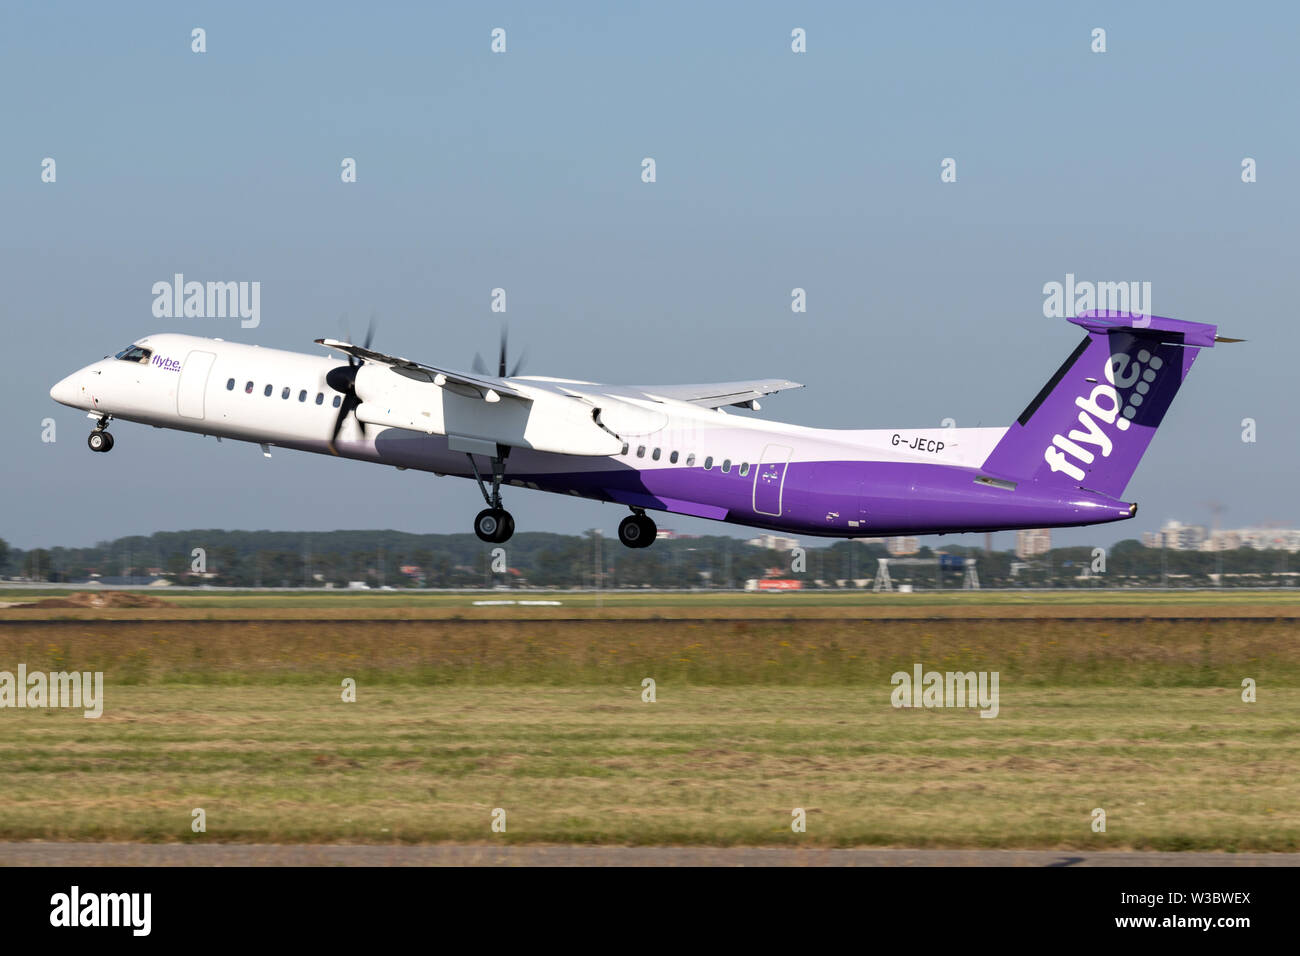 British flybe Bombardier DHC-8-400 Dash 8 with registration G-JECP taking off runway 36L (Polderbaan) of Amsterdam Airport Schiphol. - Stock Image